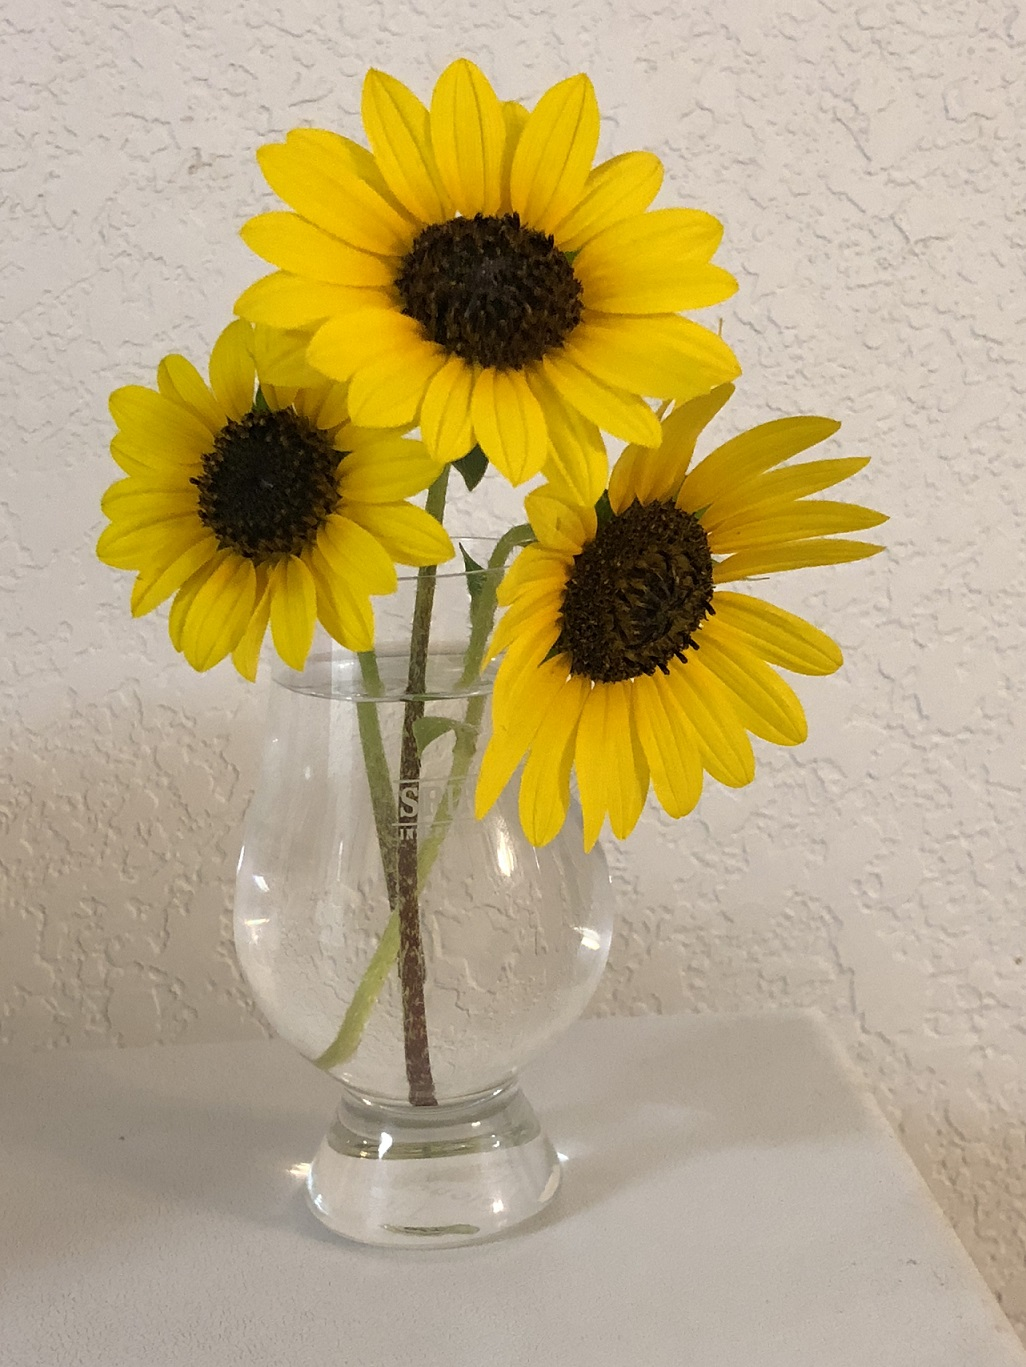 00s Sunflowers in small vase